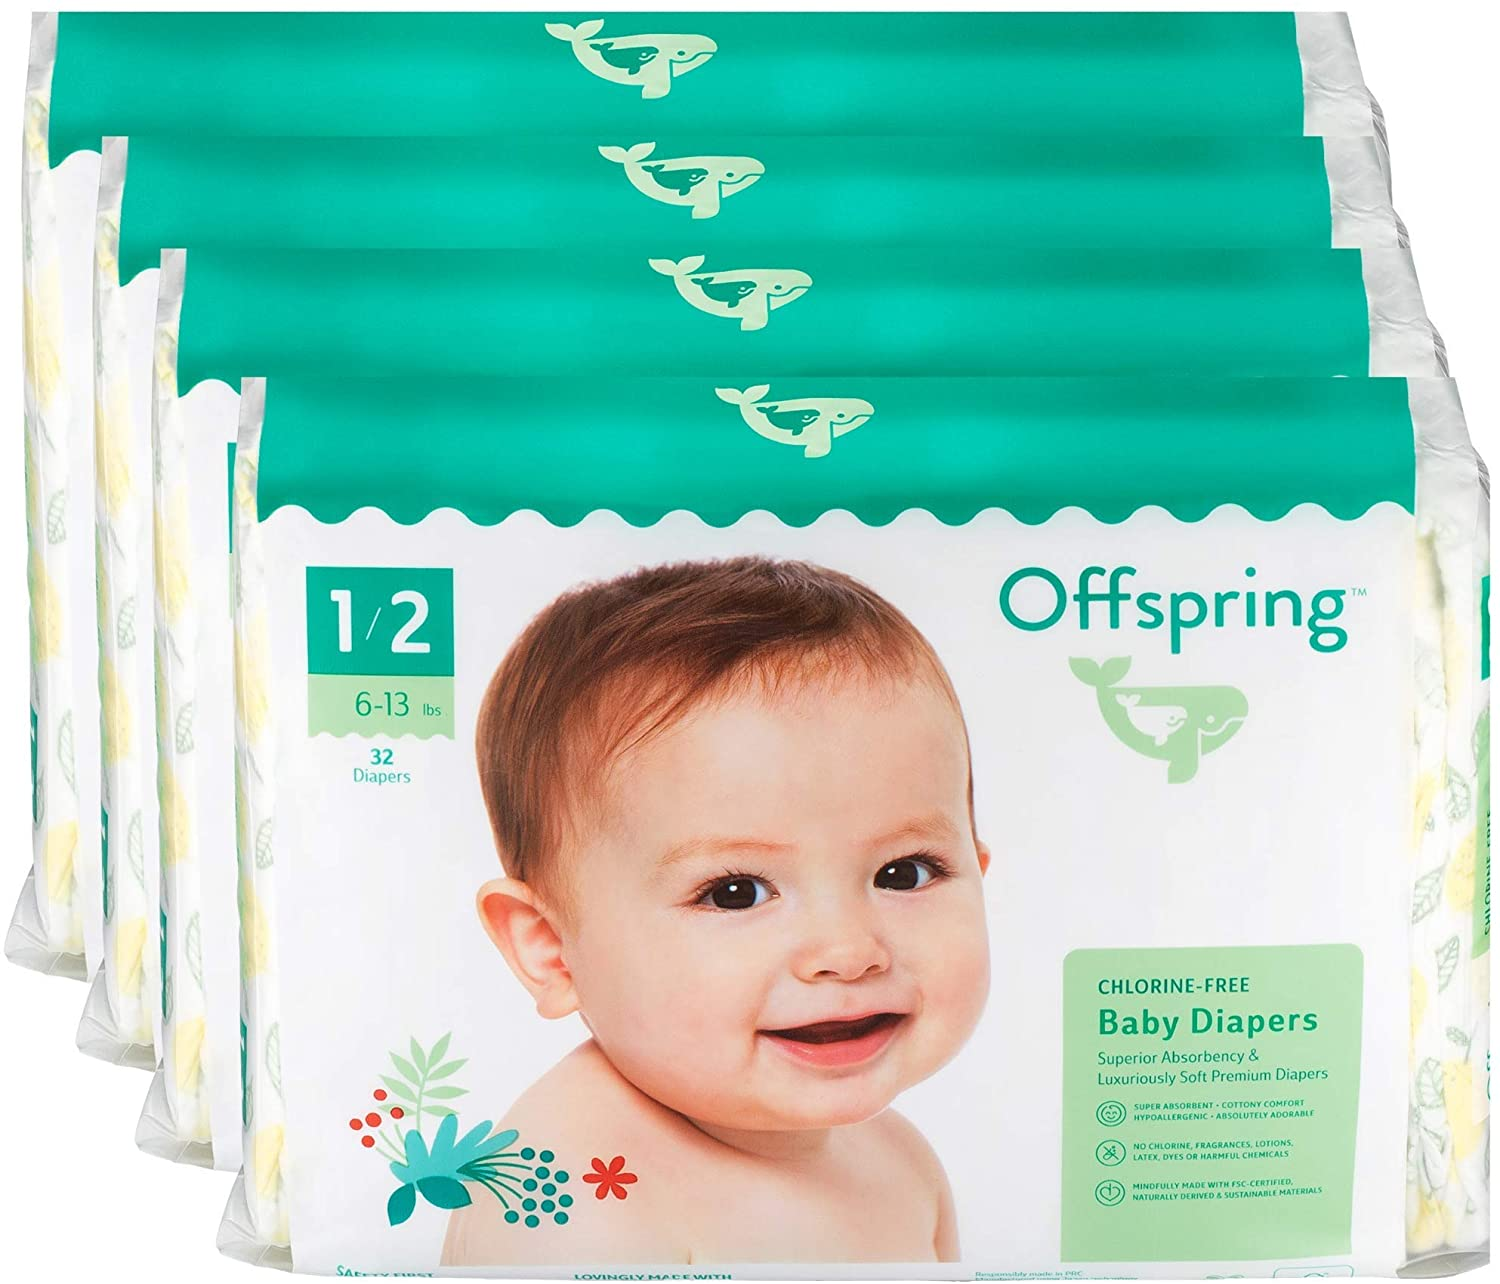 Offspring Disposable Diapers - New - Size 1 to Size 2 (6-13 lbs.) - Eco-Friendly - Premium Ultra Soft - Double Leak Guard Technology - Made with Sustainable Materials - 128 Count